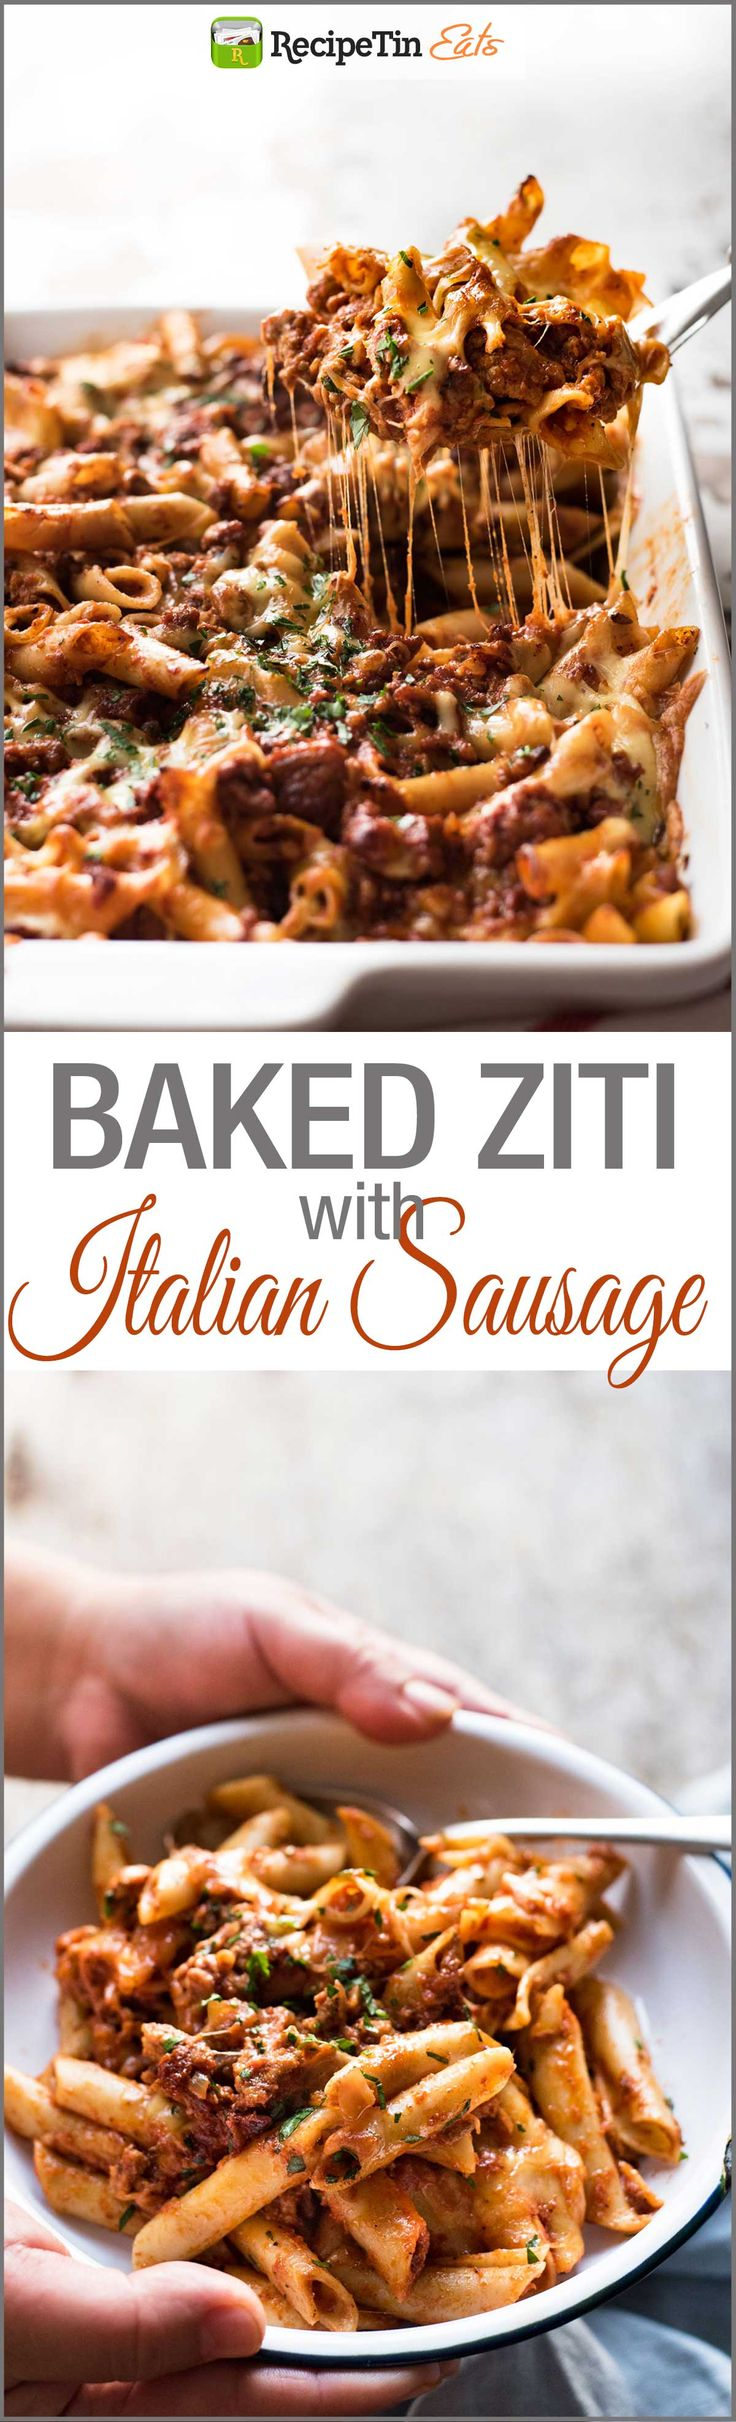 Italian Baked Ziti with Sausage - This is made with a homemade Italian sausage mixture which is EASIER than squeezing meat out of sausage casings!